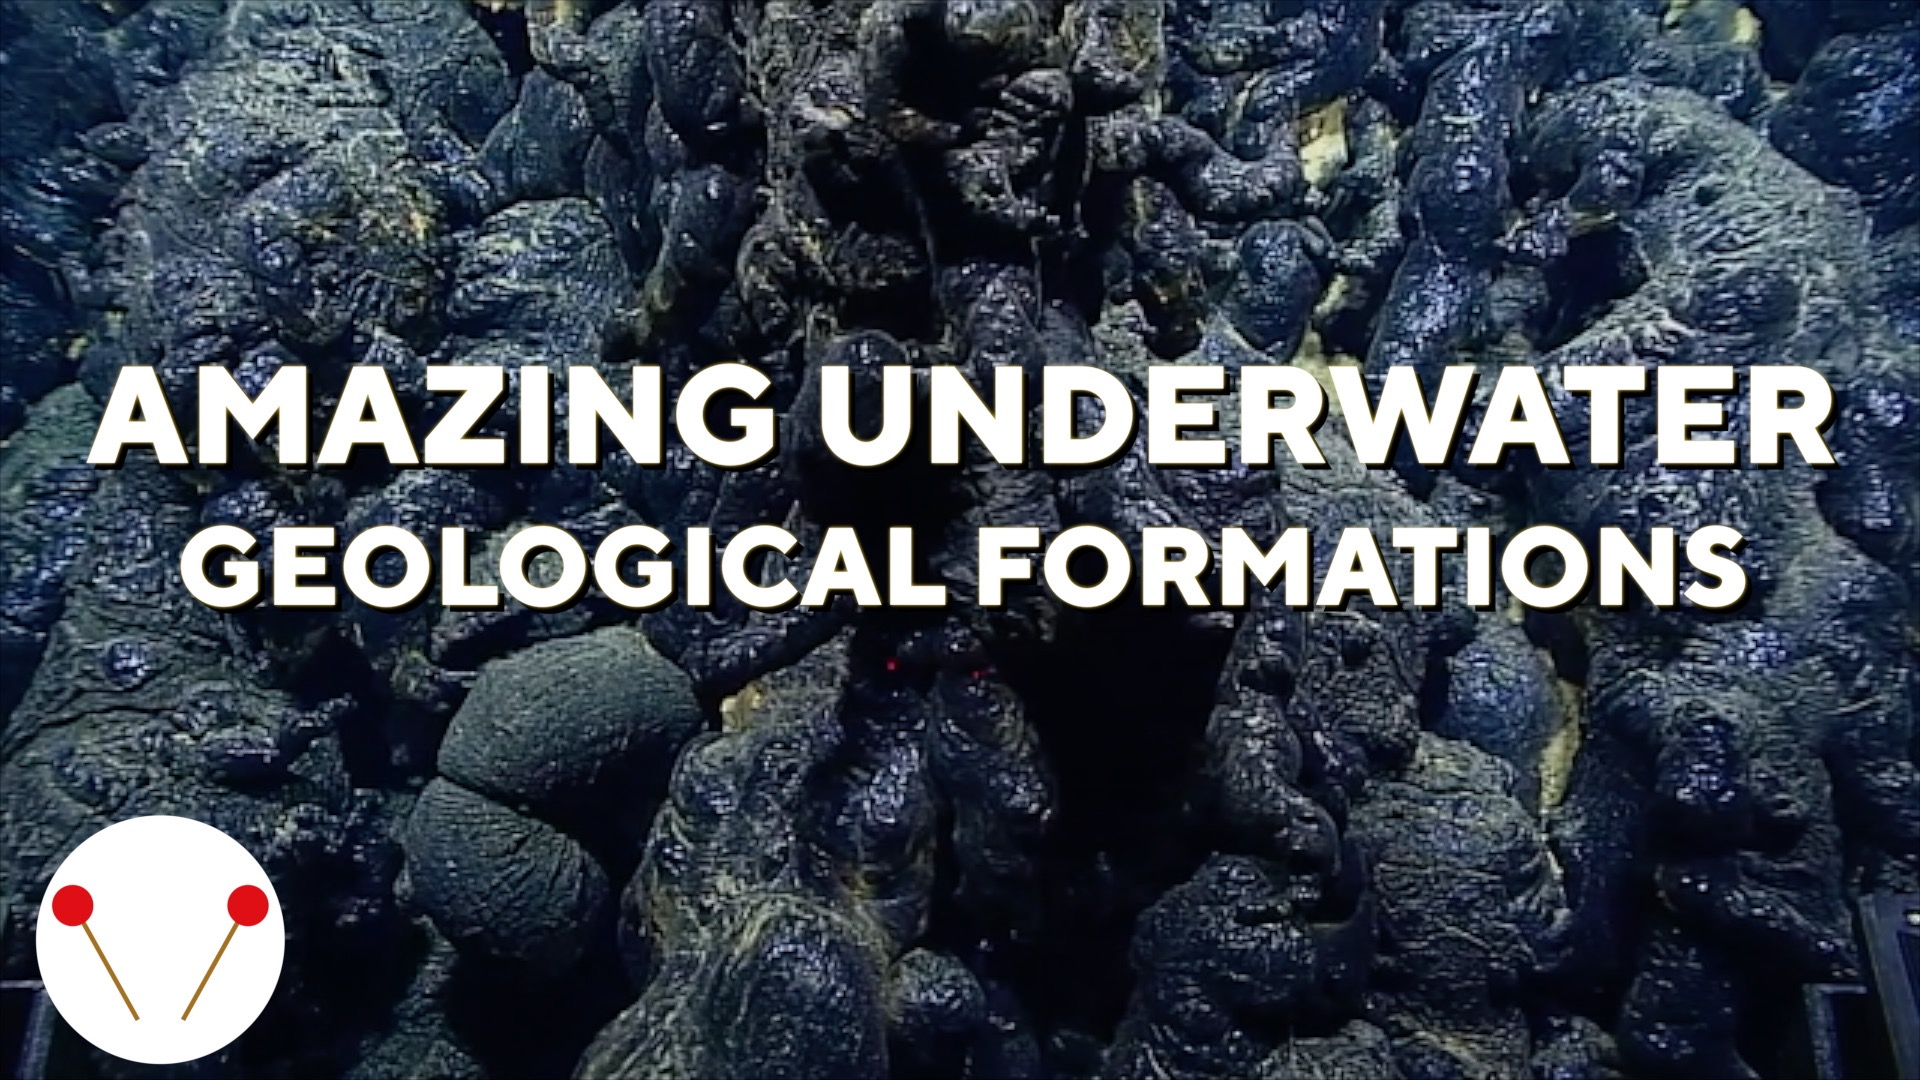 7 Amazing Underwater Geological Formations